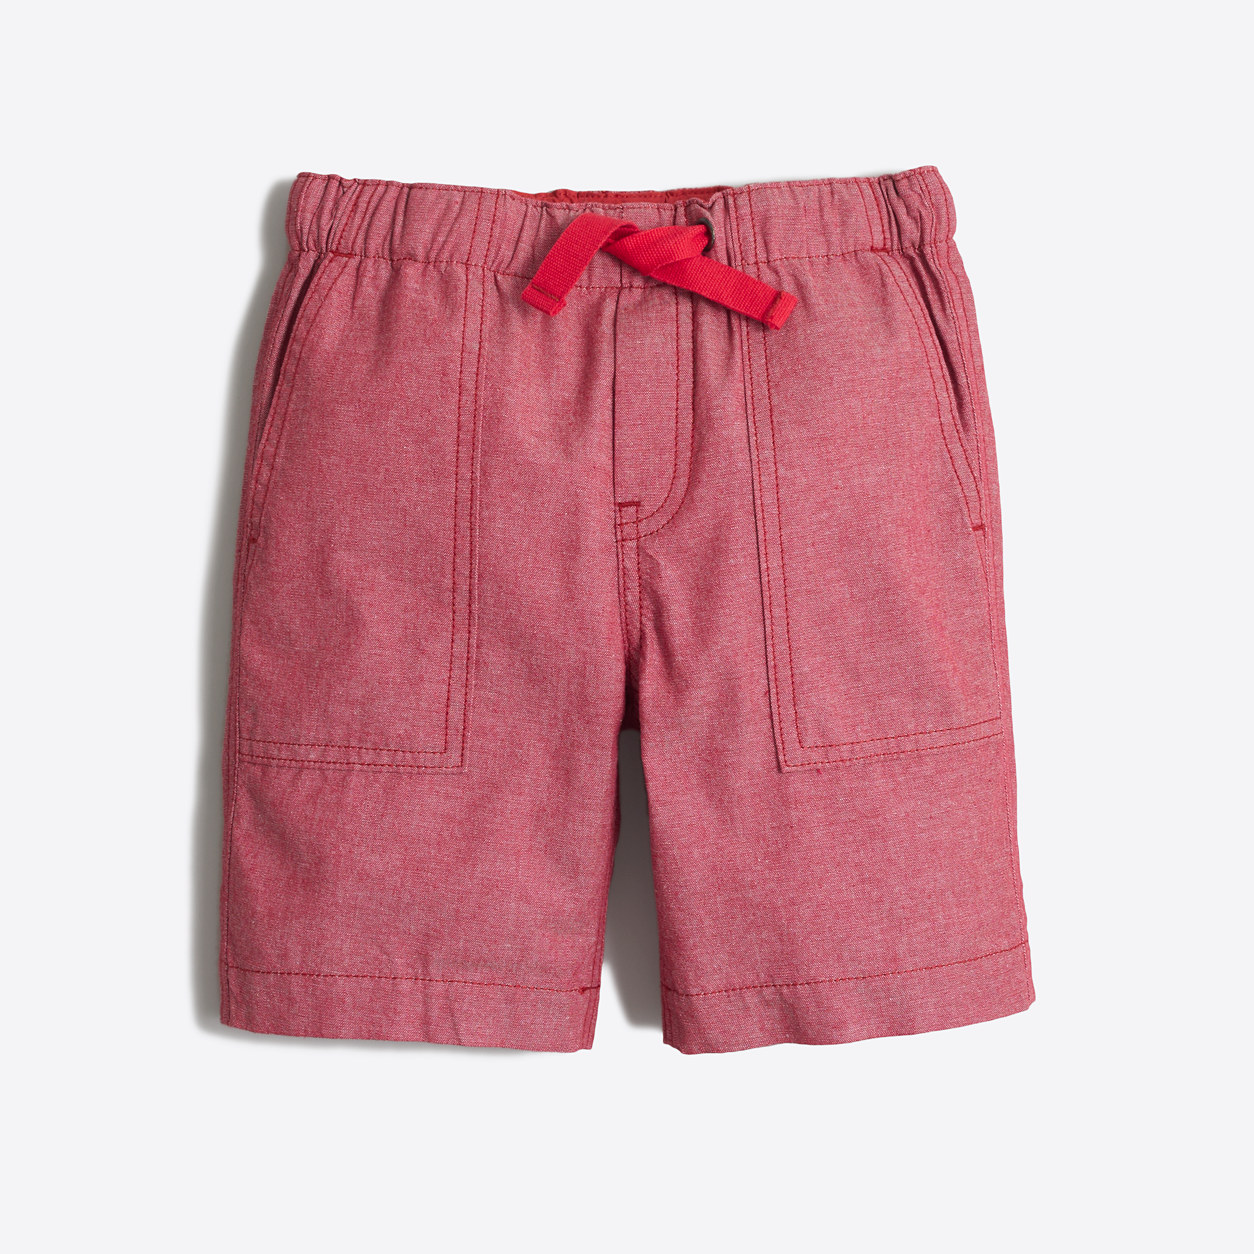 Boys' Shorts & Swim | J.Crew Factory - Shorts